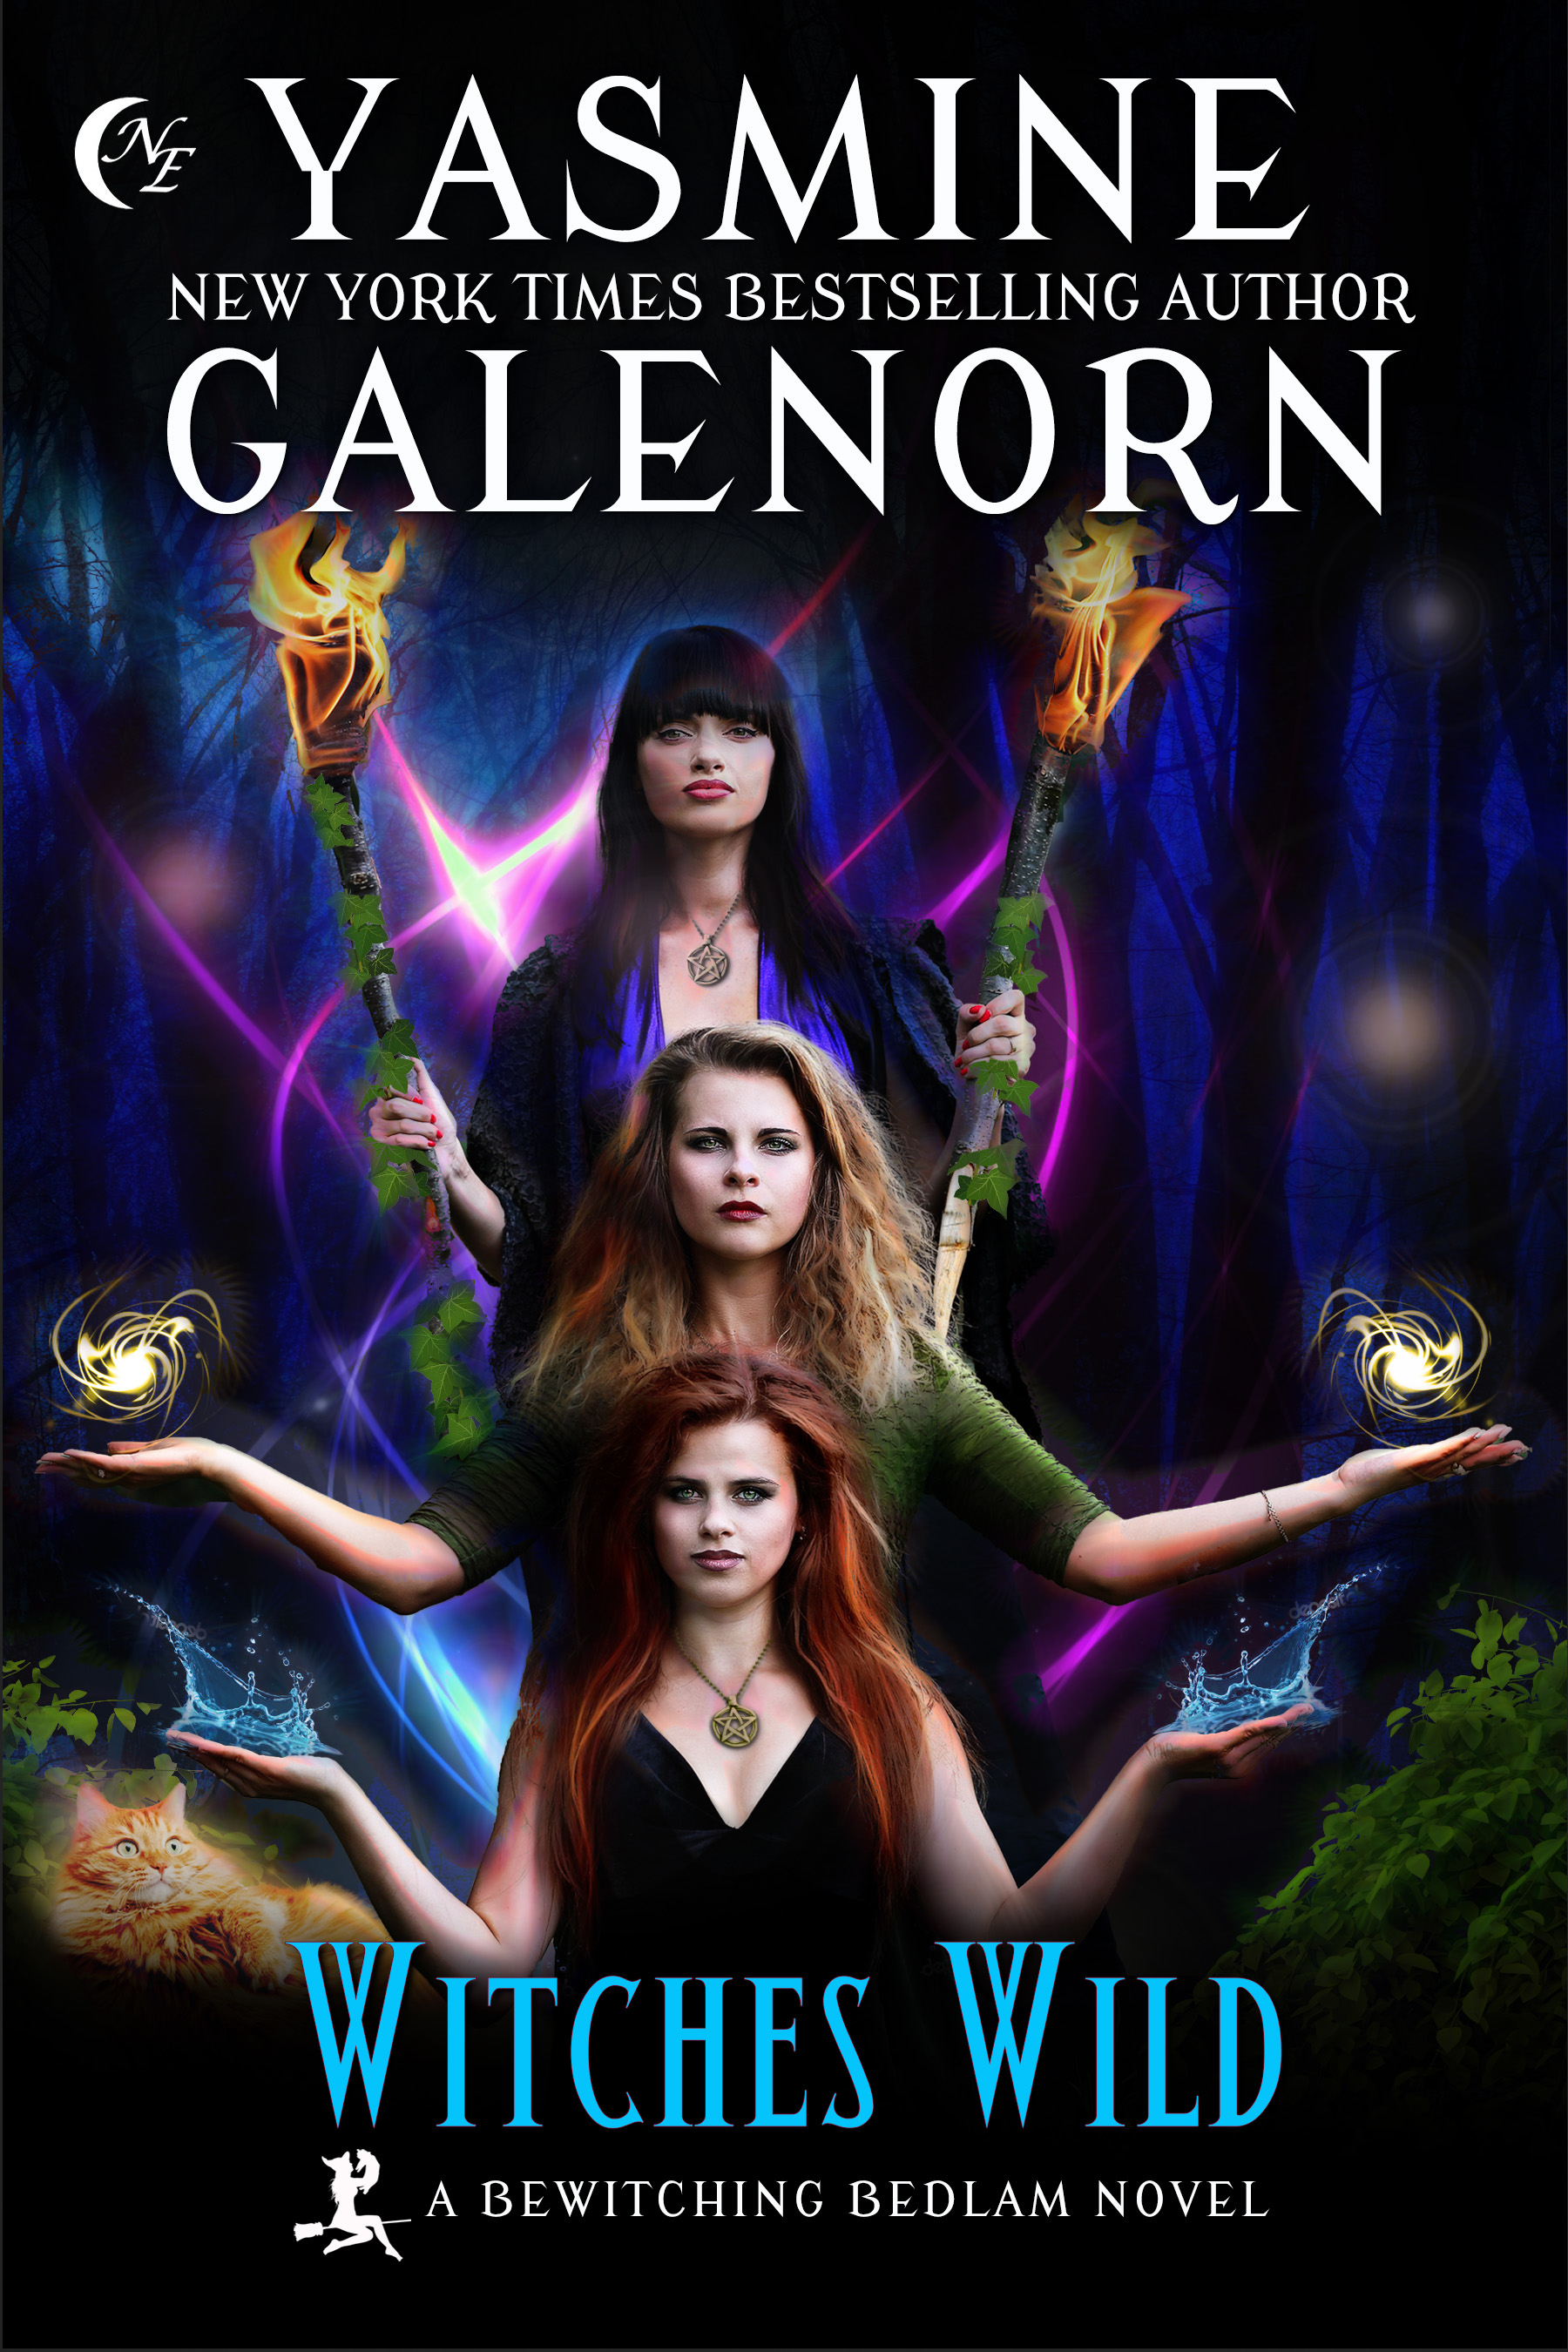 Backlist Blitz Excerpt: Witches Wild